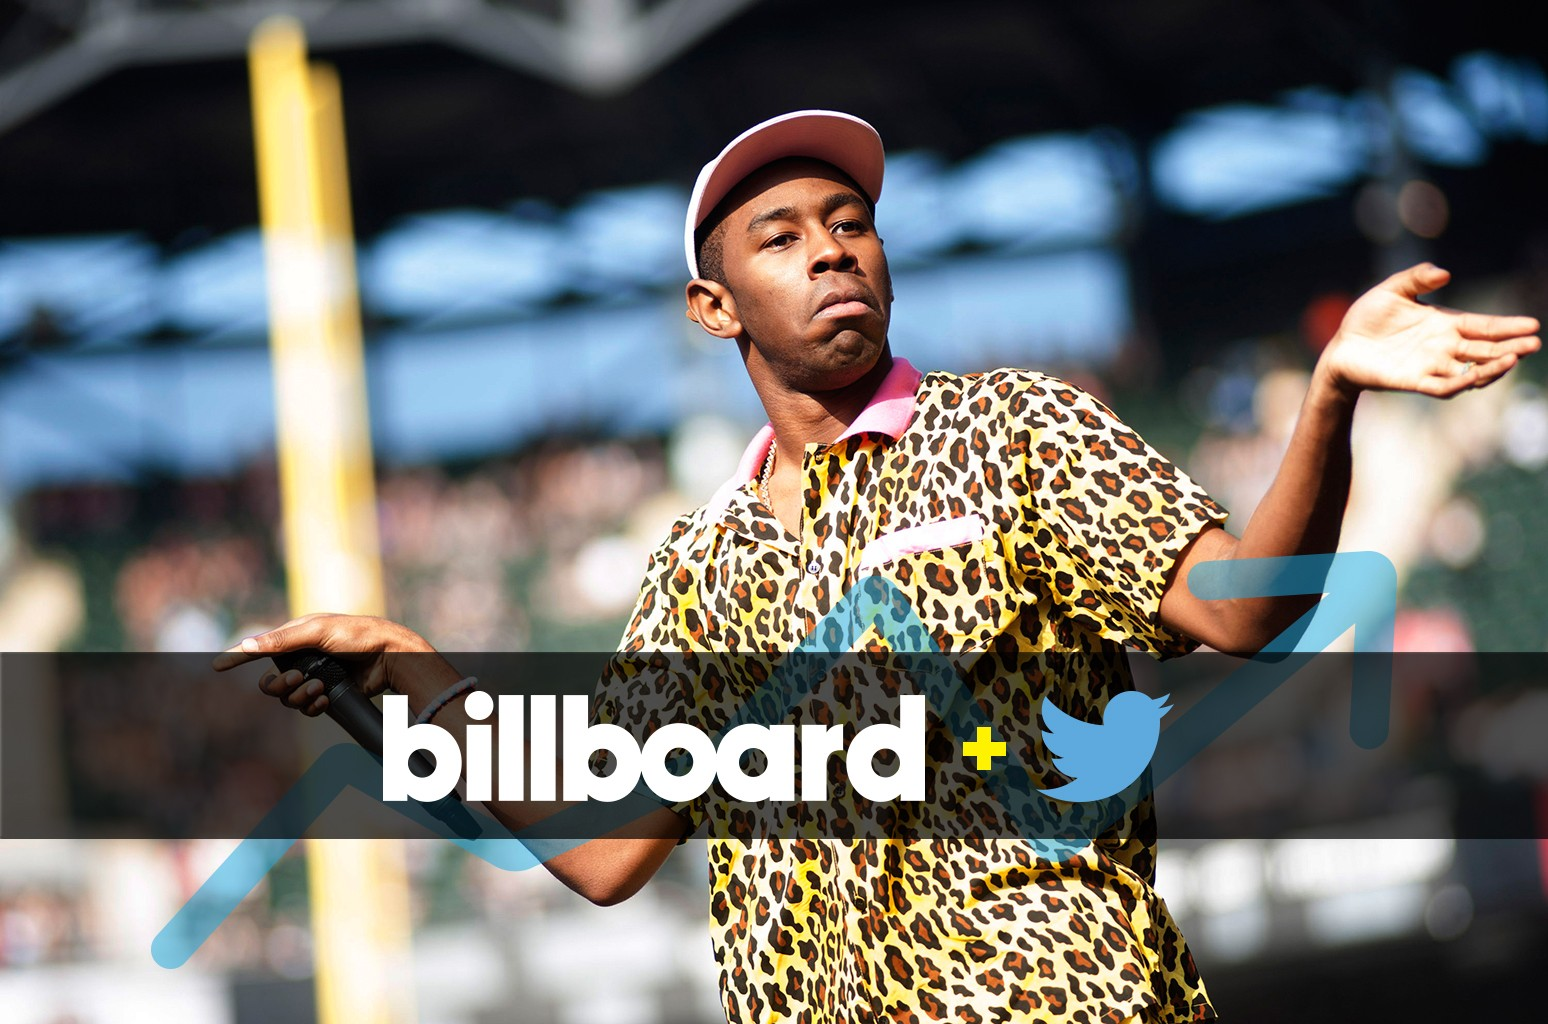 Tyler the Creator at the Magnificent Coloring Day Festival at Comiskey Park in Chicago on Sept. 24, 2016.